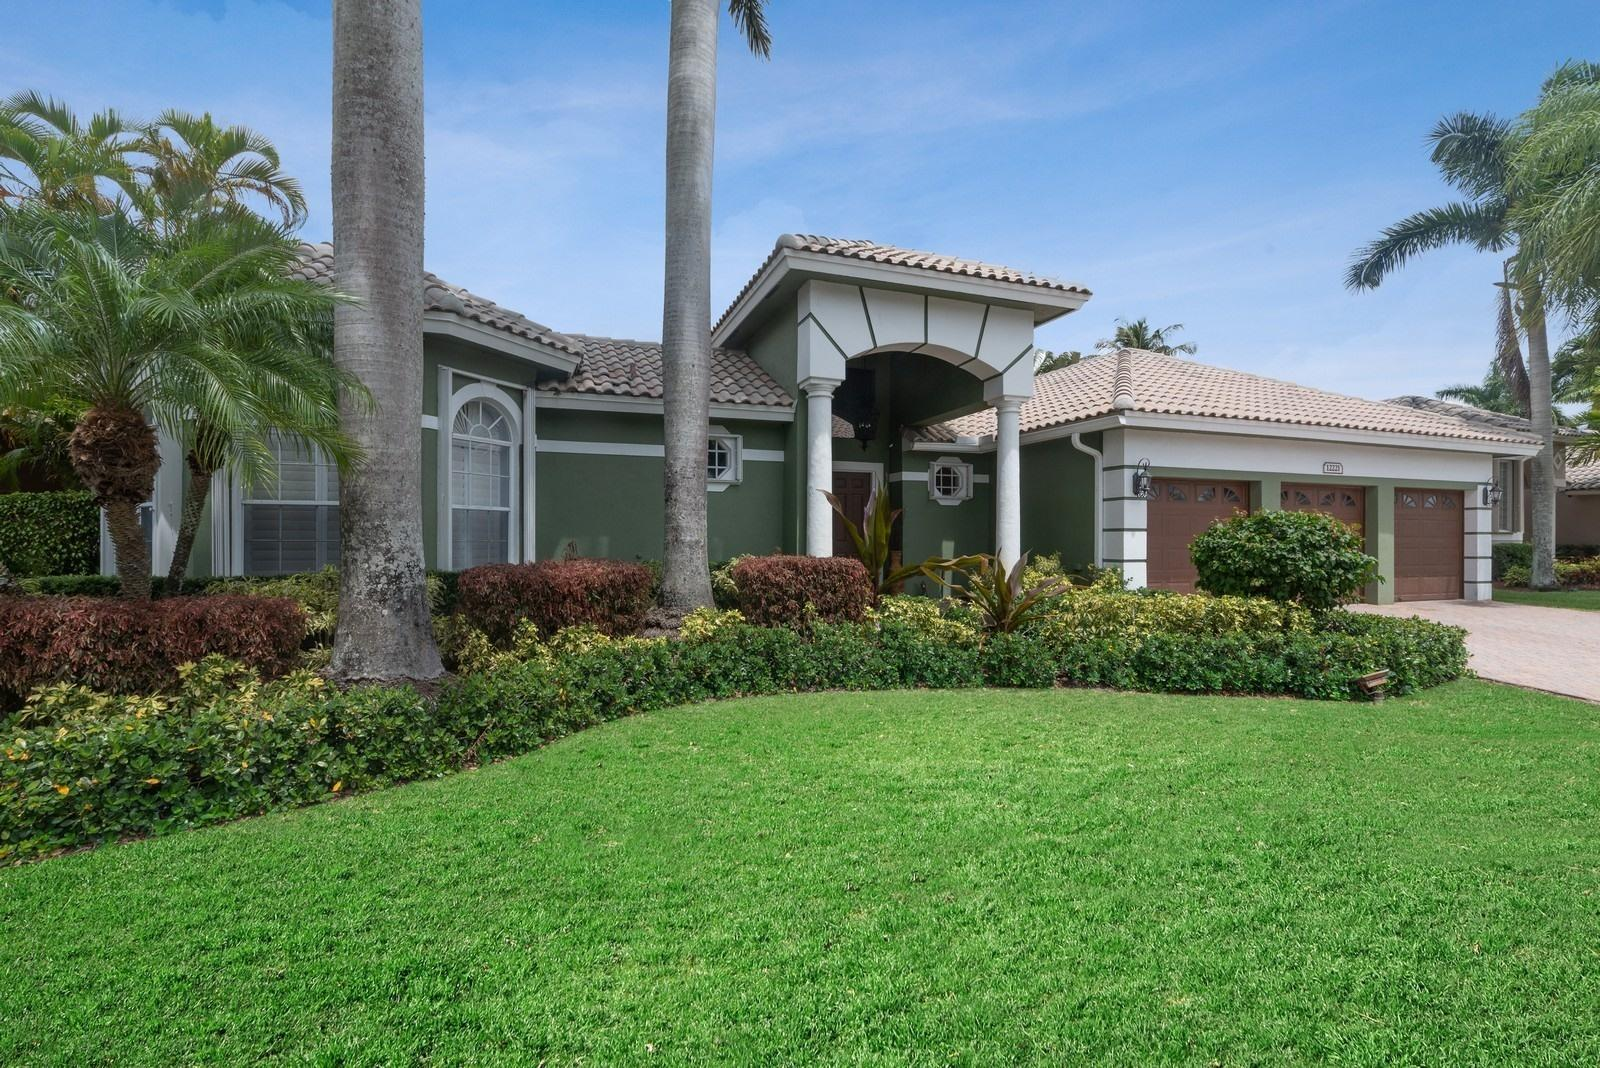 Photo of 12221 Kenton Way, Boca Raton, FL 33428